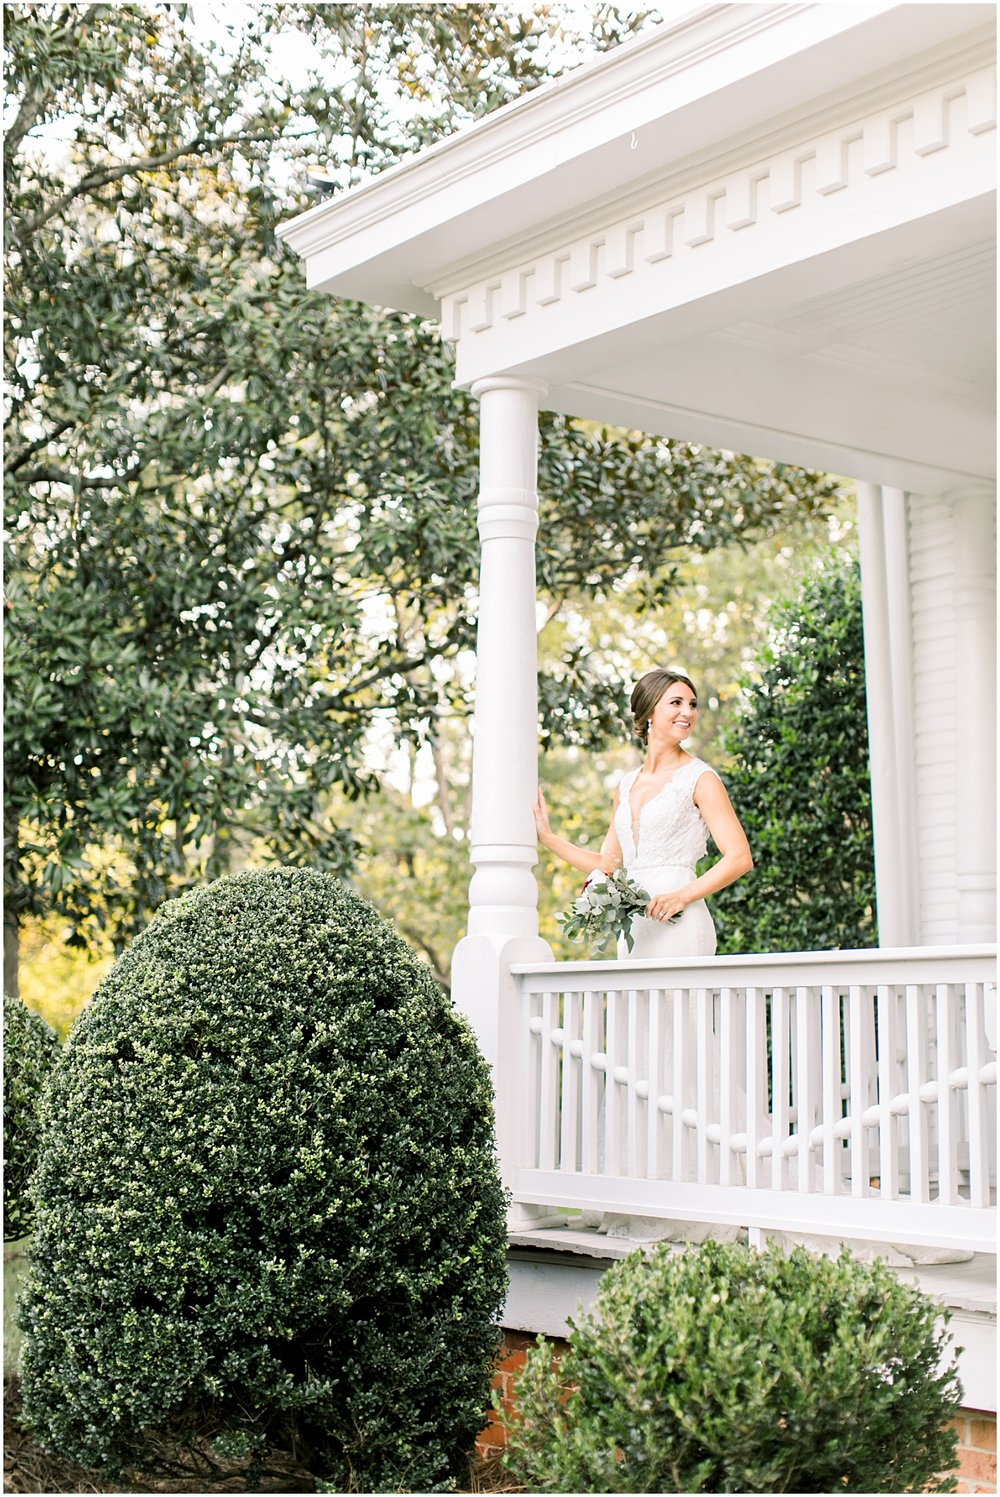 Victorian Crow's Nest  Bridal Session, Charlotte NC Wedding_Erin L. Taylor Photography_0002.jpg